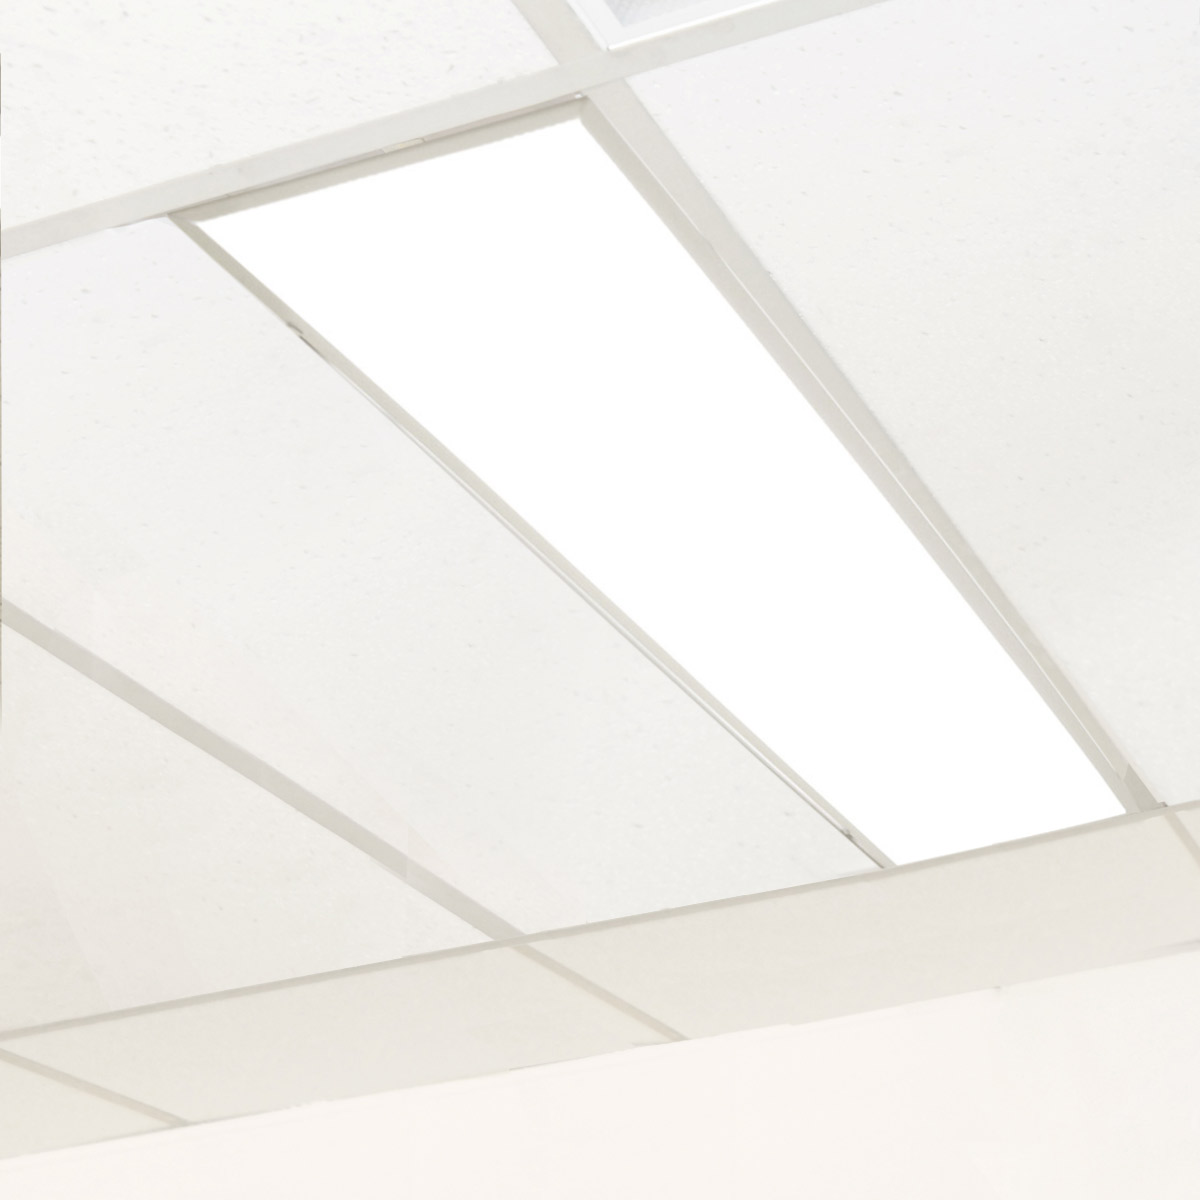 Claris LED Retrofit Kit Installed in 2x4 Fixture